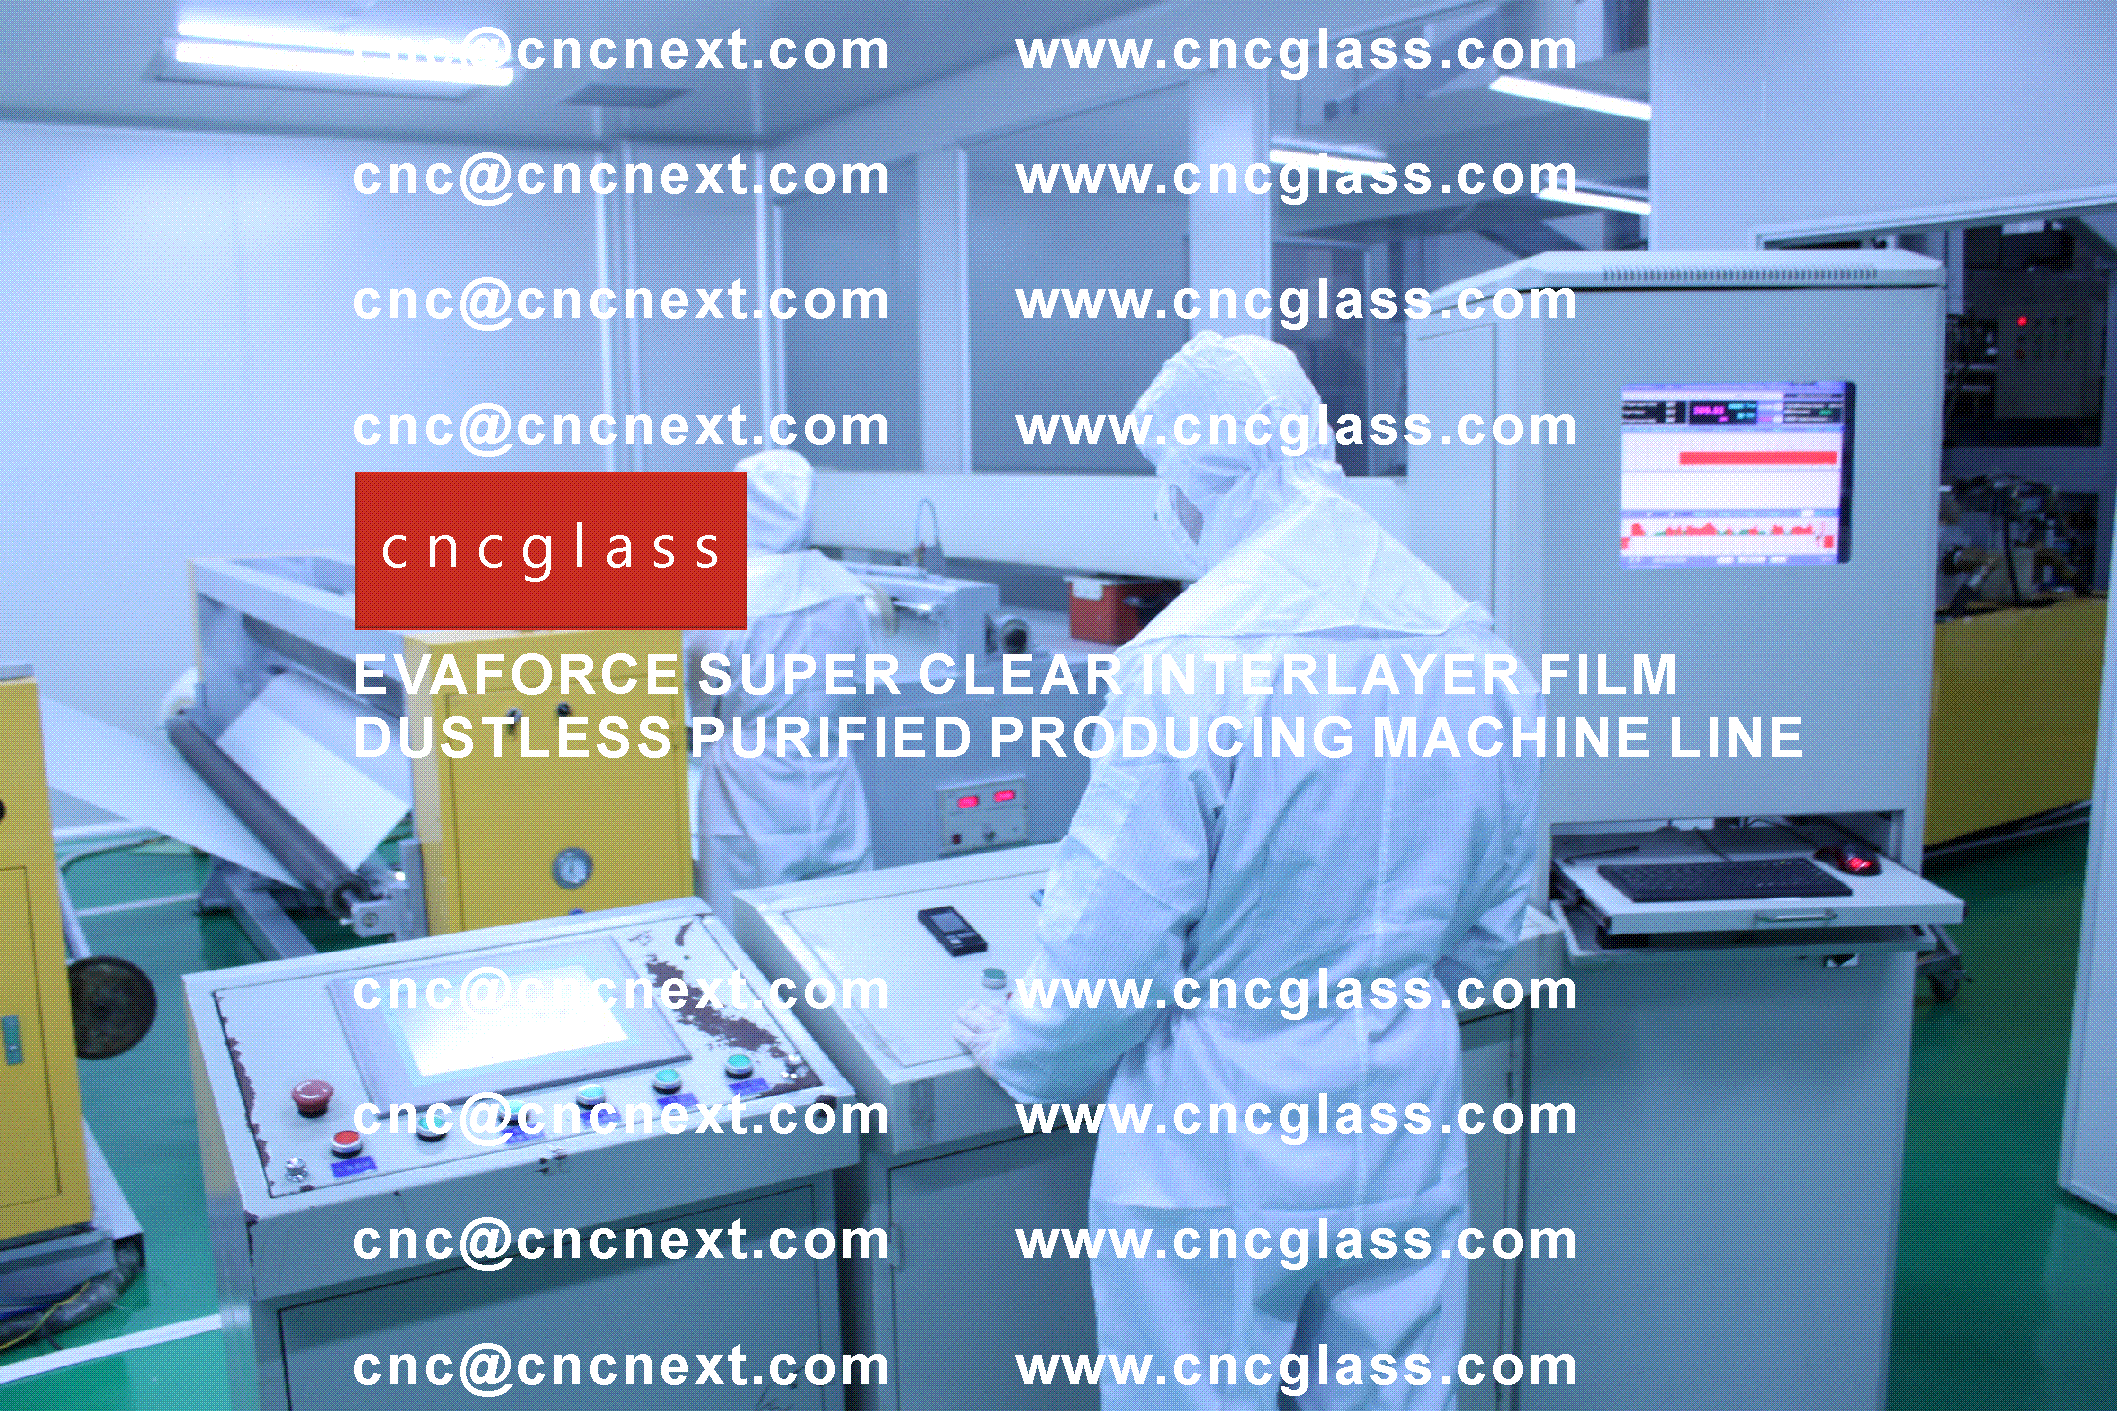 012 EVAFORCE SUPER CLEAR INTERLAYER FILM PRODUCING MACHINE LINE